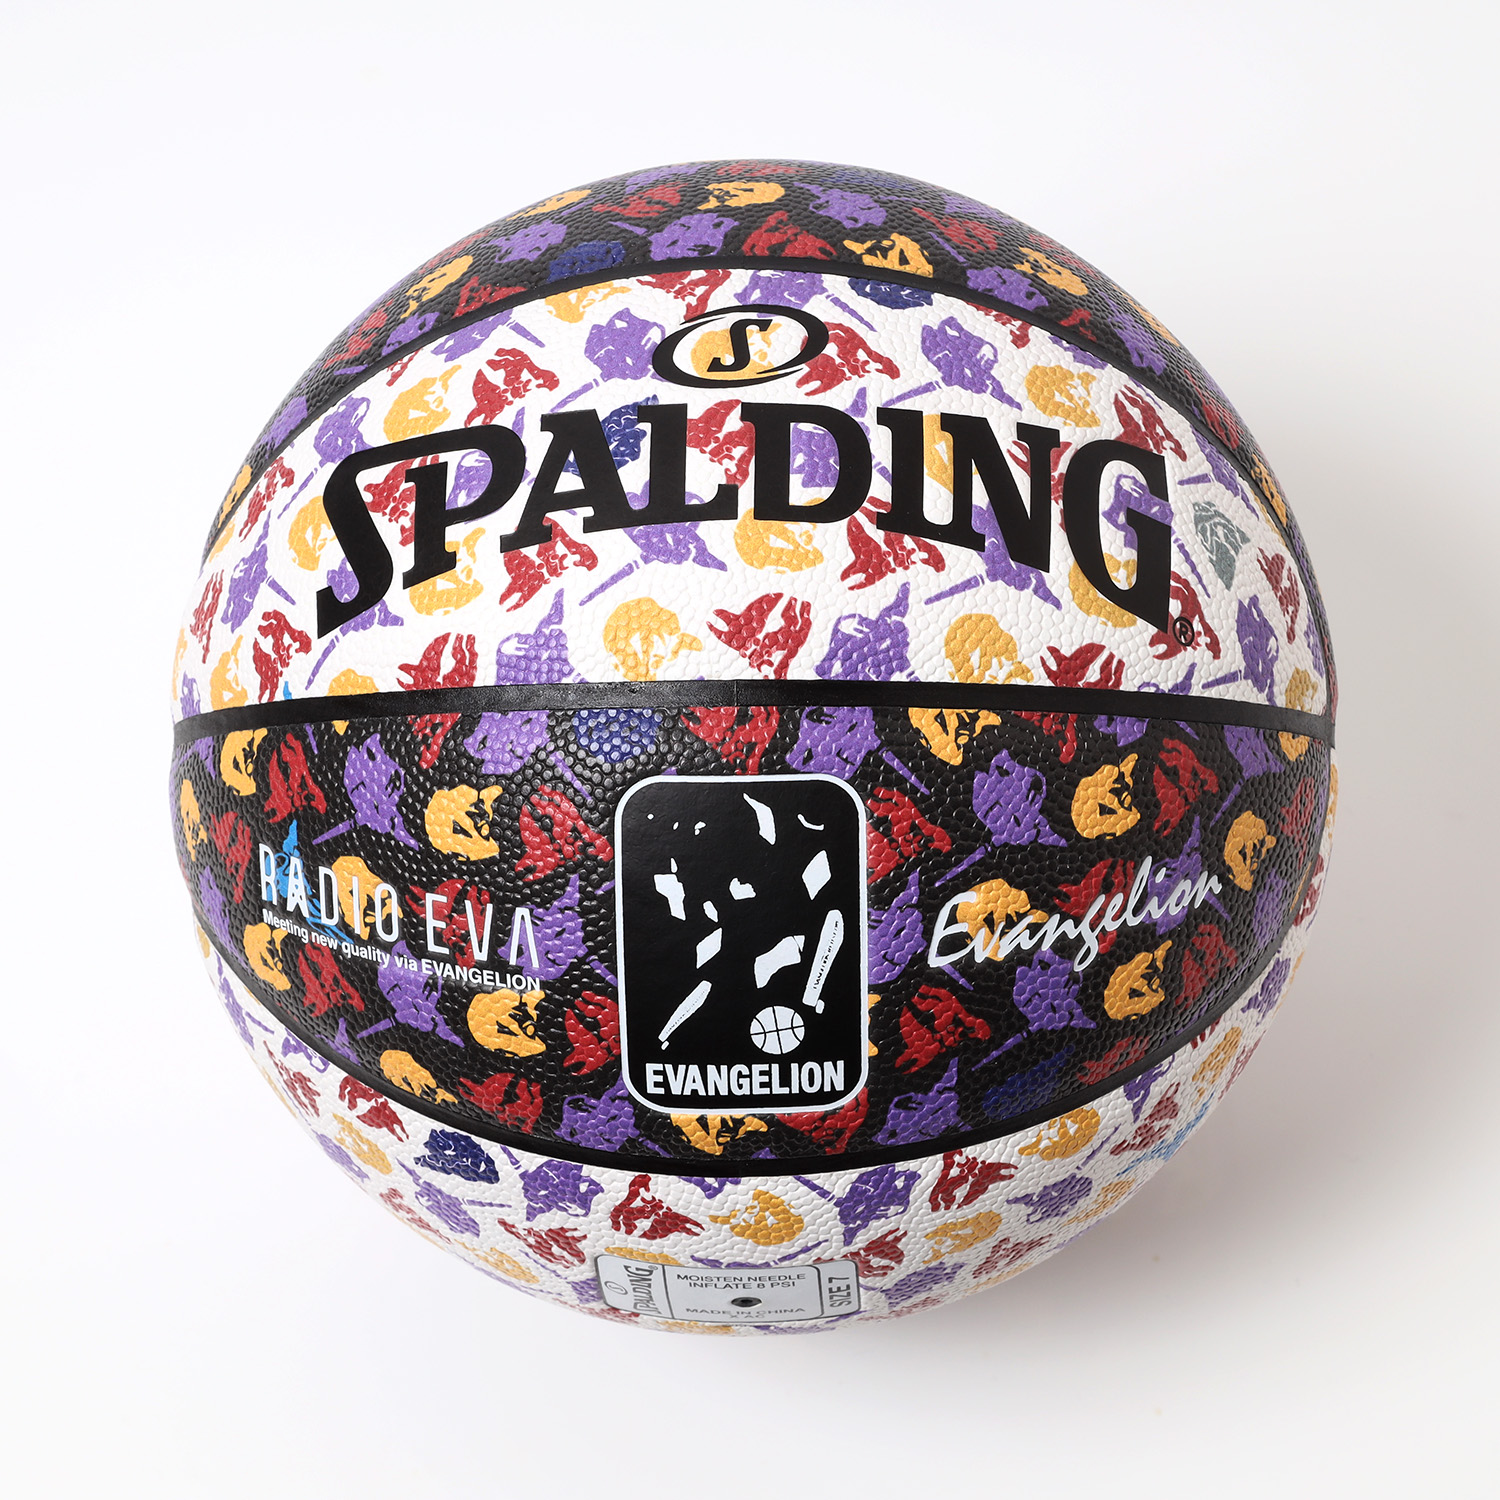 RADIO EVA Basketball by SPALDING (RADIO EVA MONOGRAM)